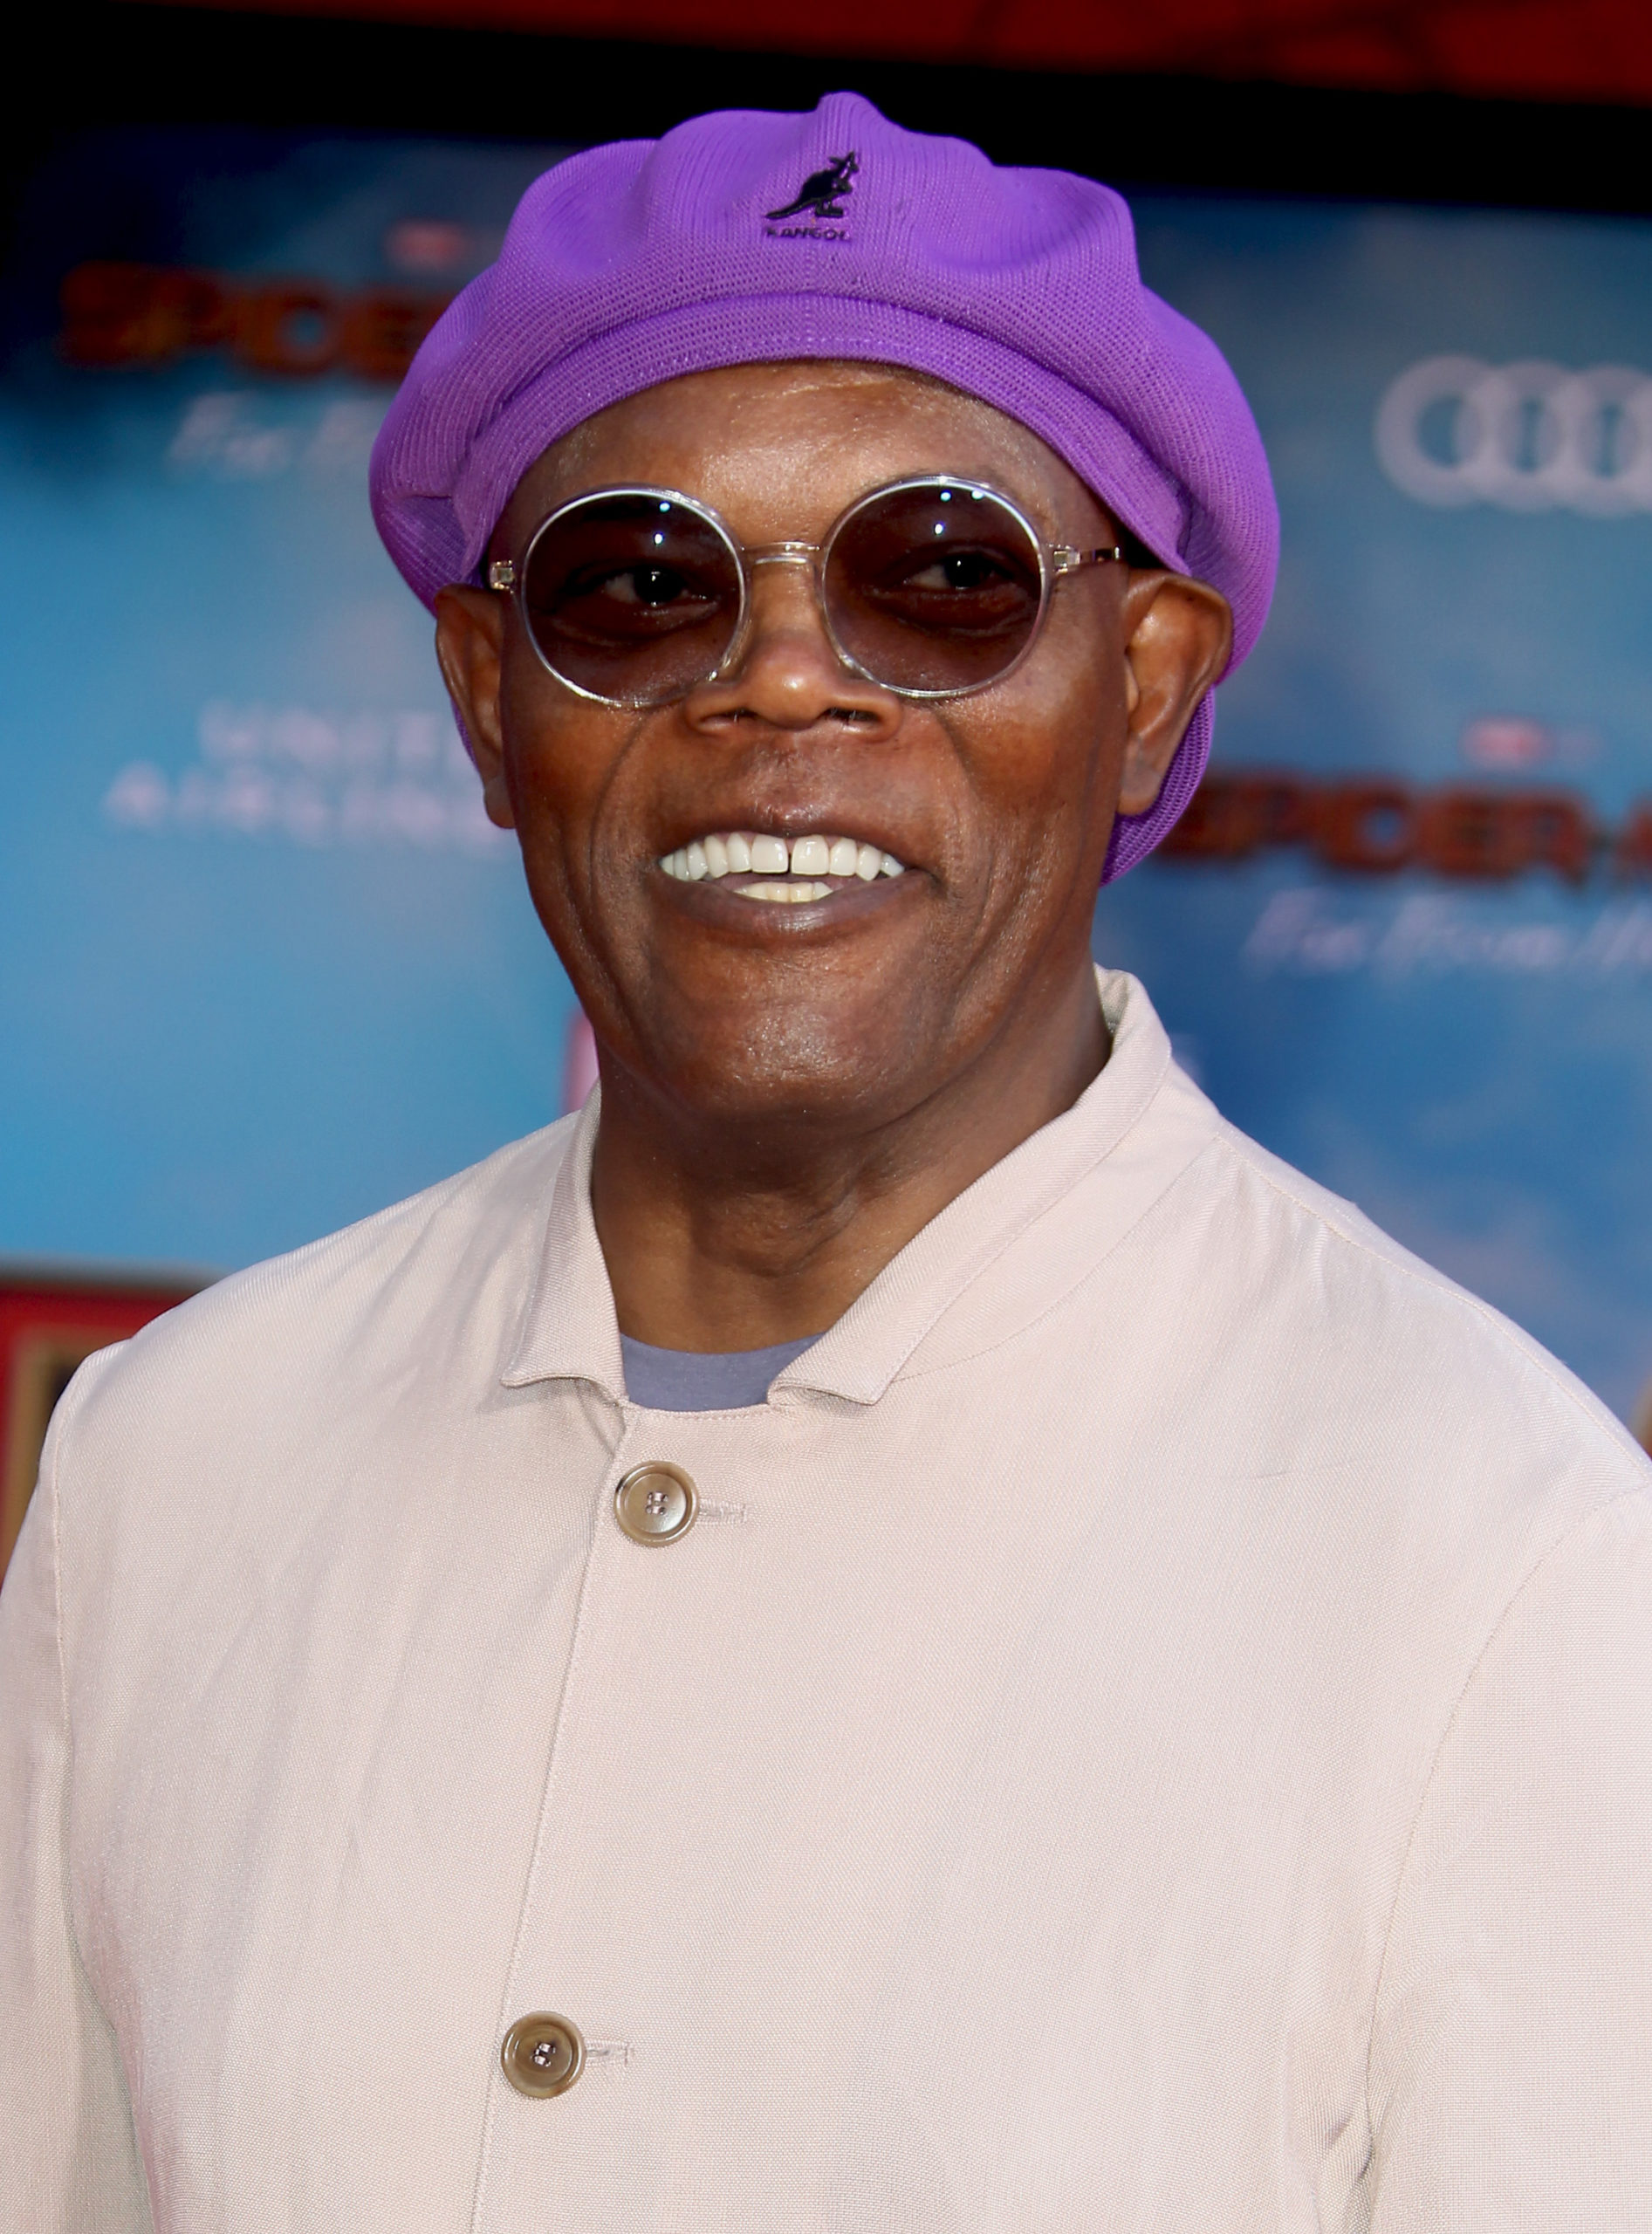 Samuel L Jackson Was Expelled From College During Civil Rights Movement Protests